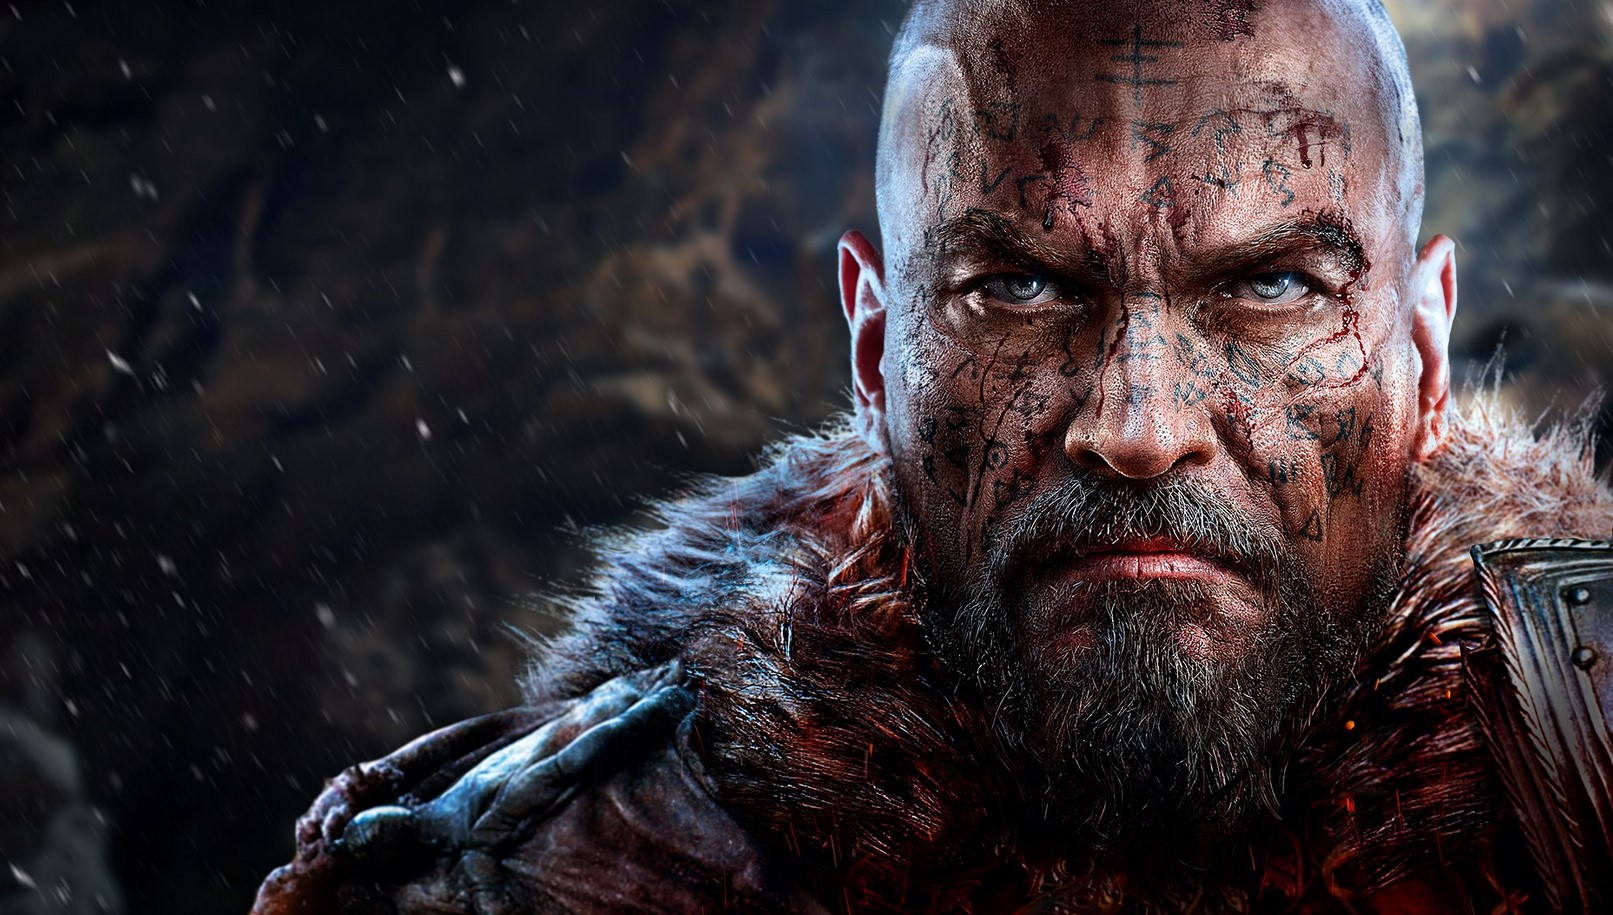 Lords of the fallen 2 hexworks